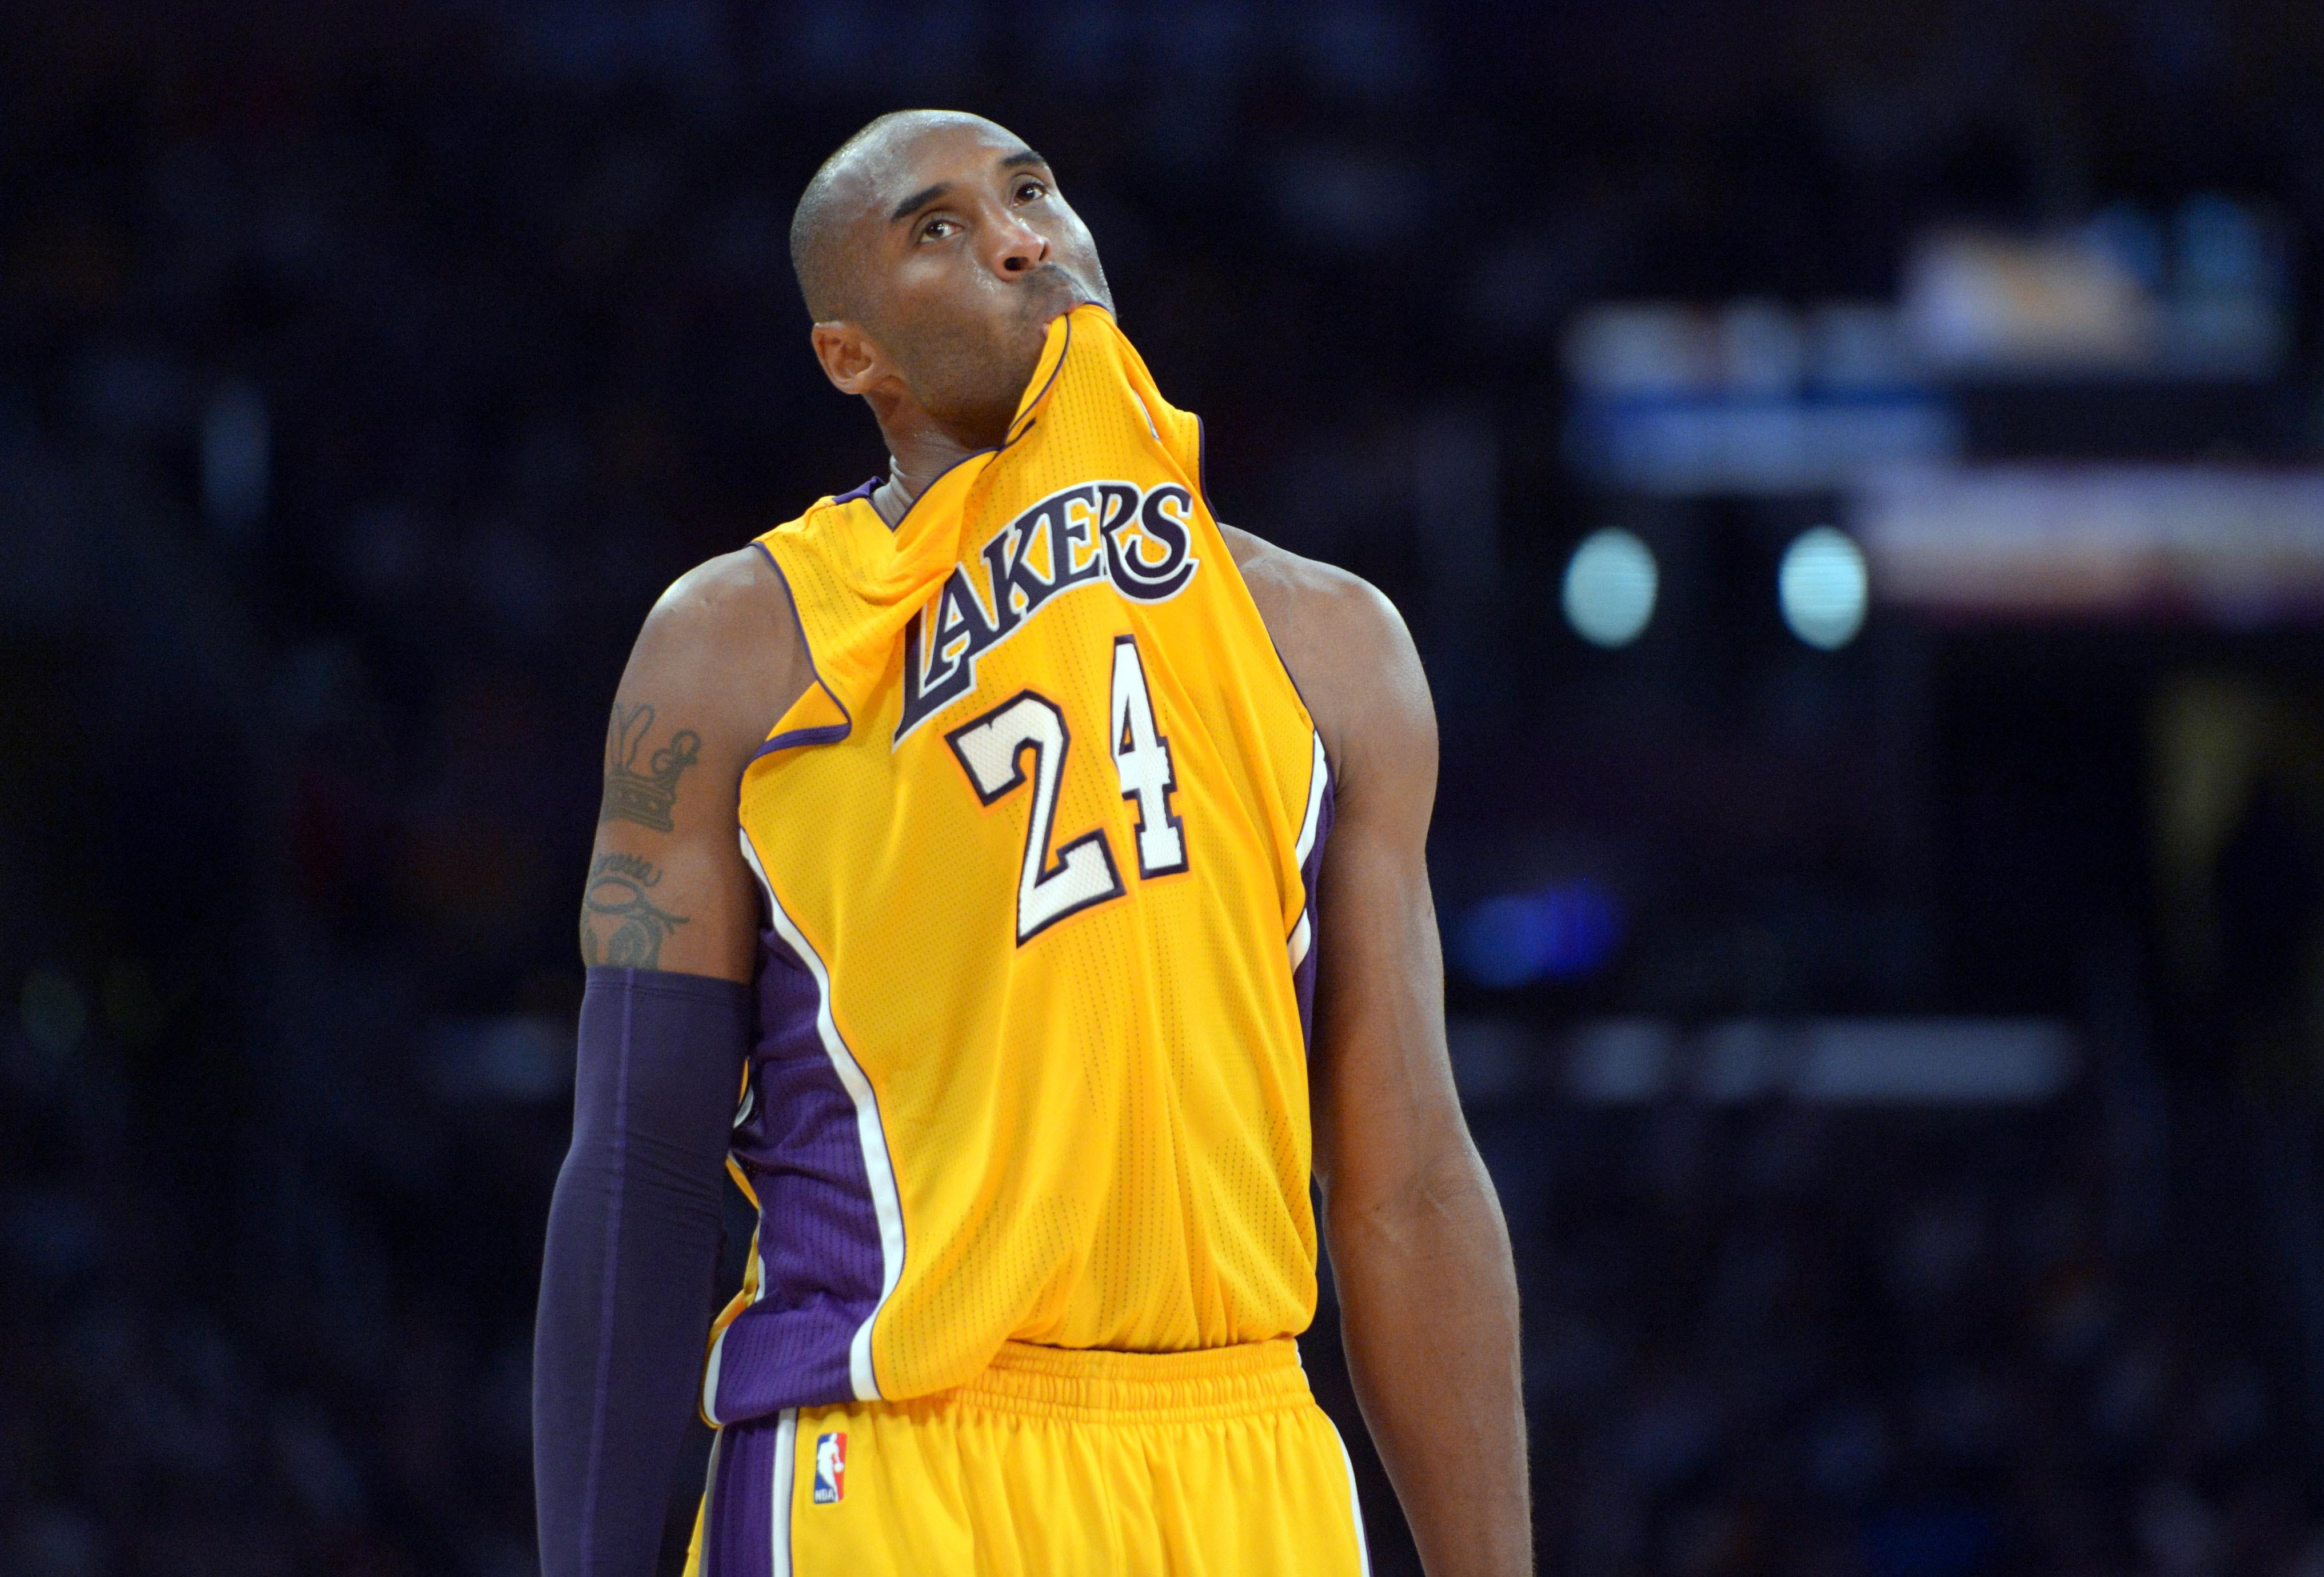 Kobe chewing on his jersey